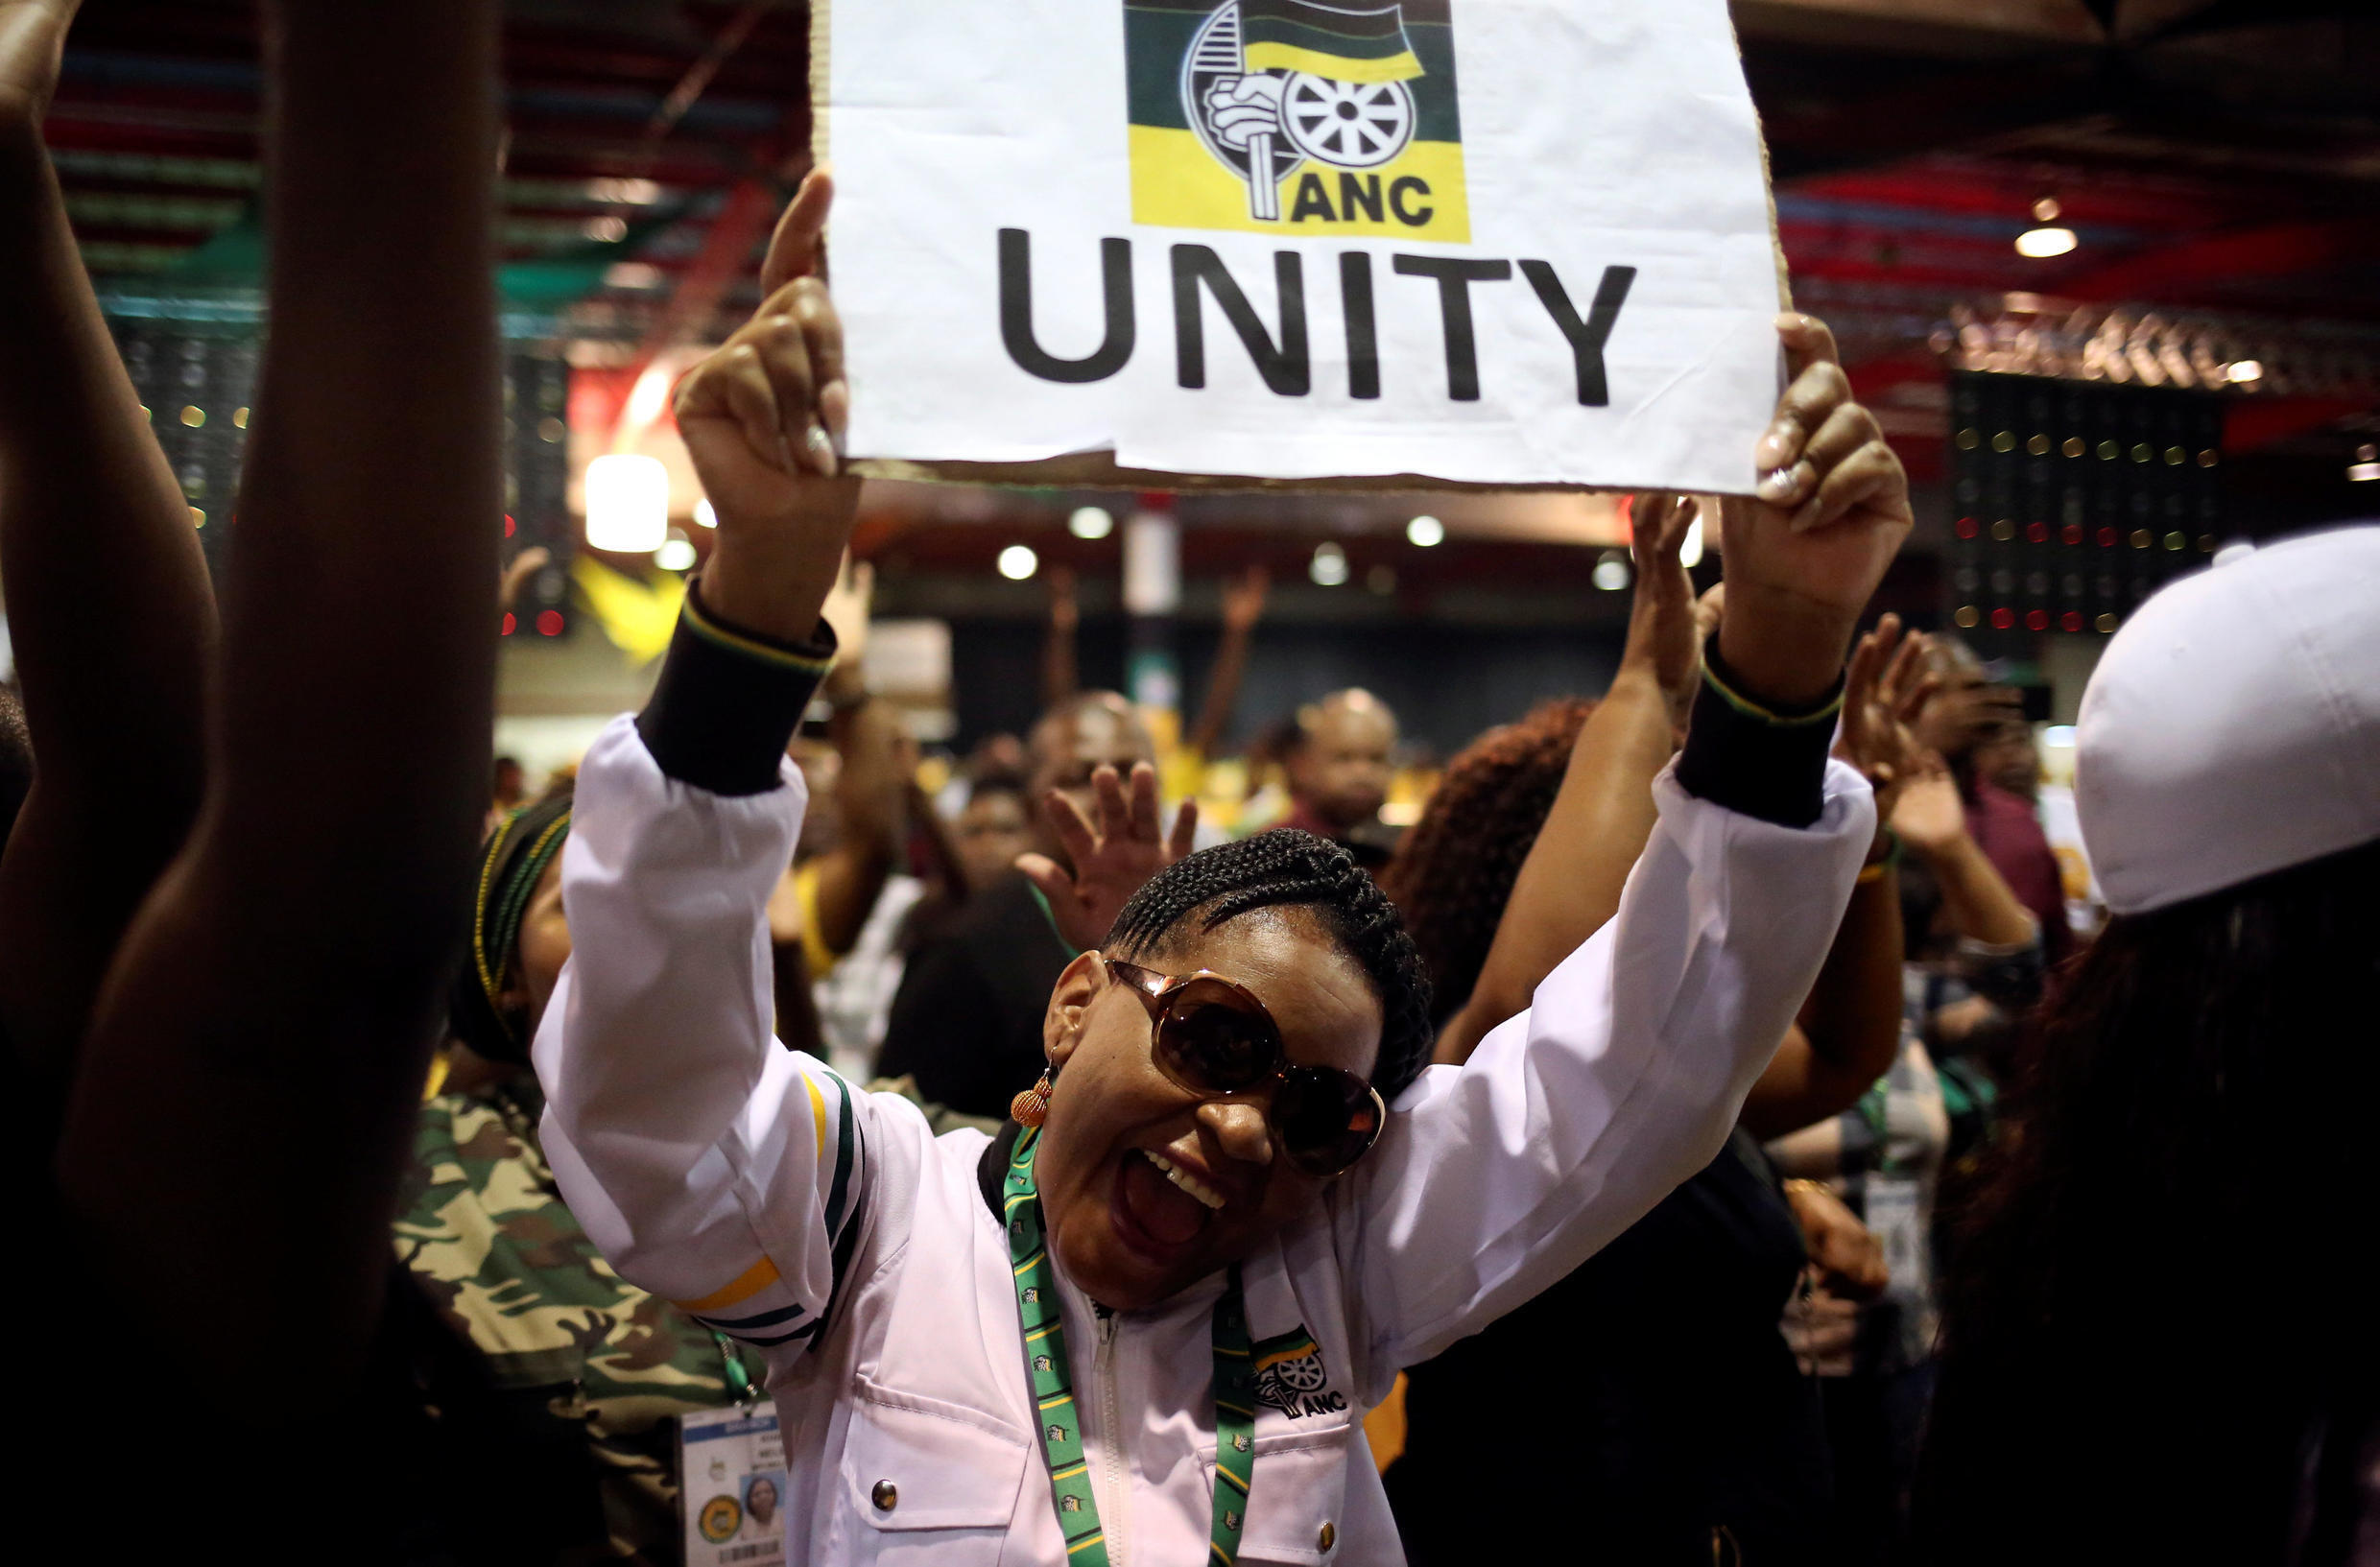 ANC members celebrate after South African Deputy president Cyril Ramaphosa was elected president of the ANC during the 54th National Conference of the ruling African National Congress (ANC), December 18, 2017